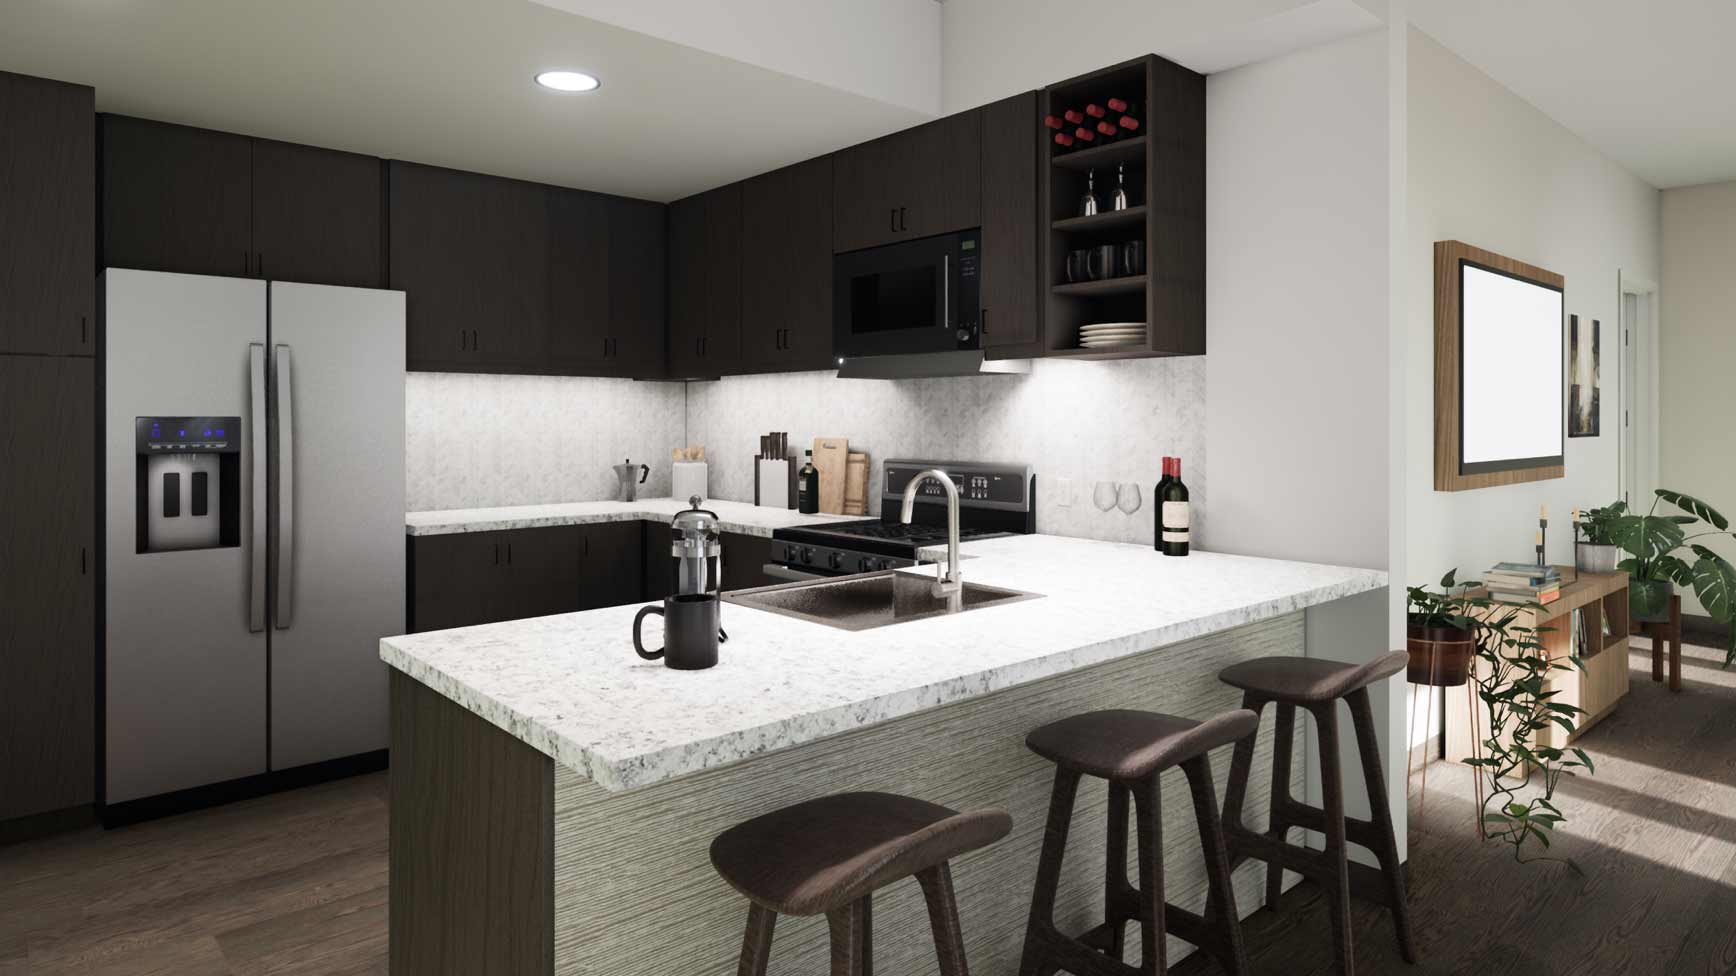 The kitchen and living area of a residential space at the Life Time LIving in Coral Gables, Florida